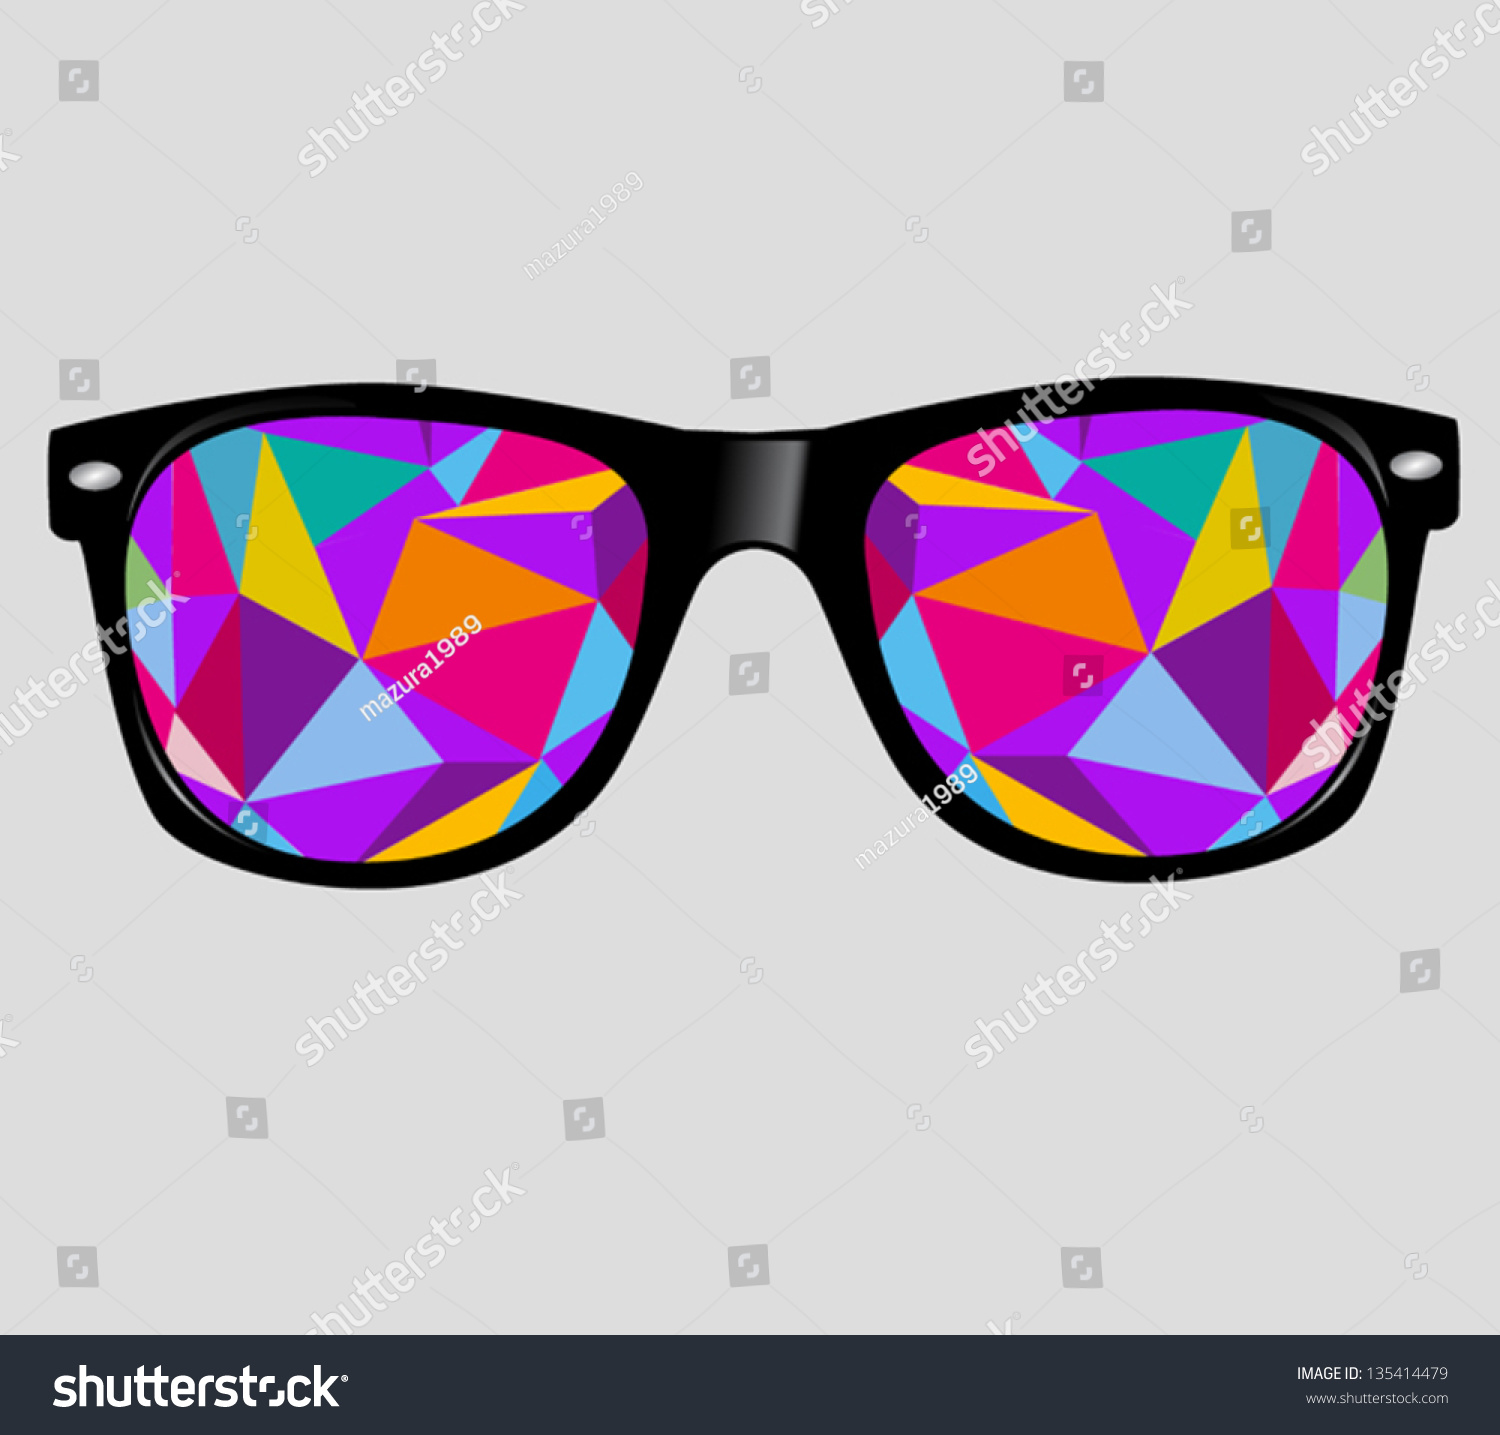 Hipster Glasses Images Stock Photos amp Vectors  Shutterstock